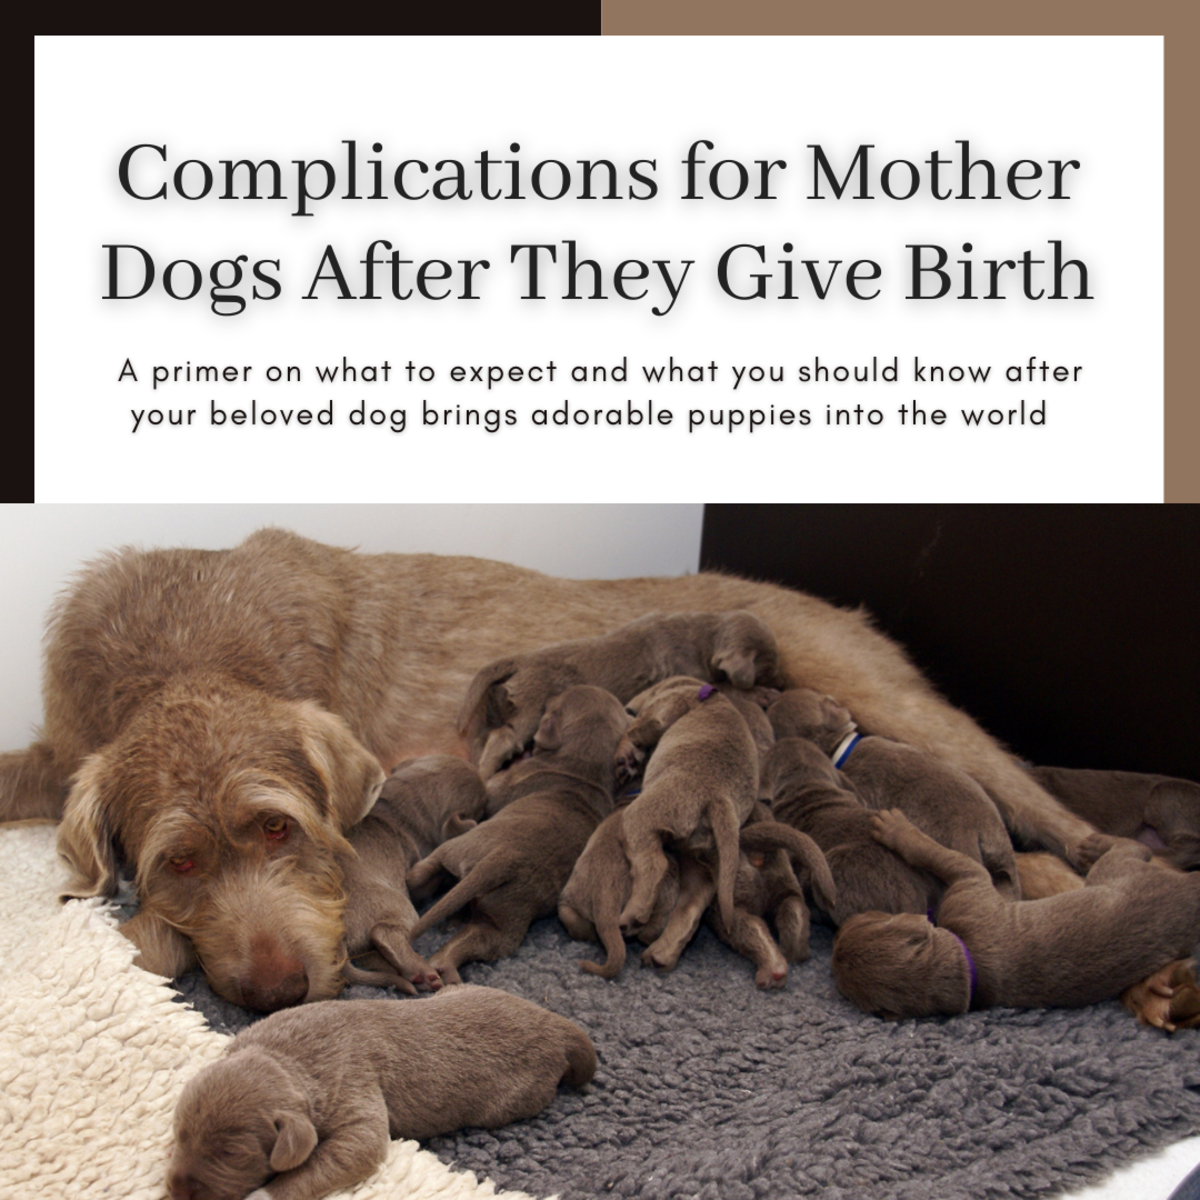 This guide will help you understand what common behaviors are normal after your dog gives birth and what conditions require immediate veterinary attention.